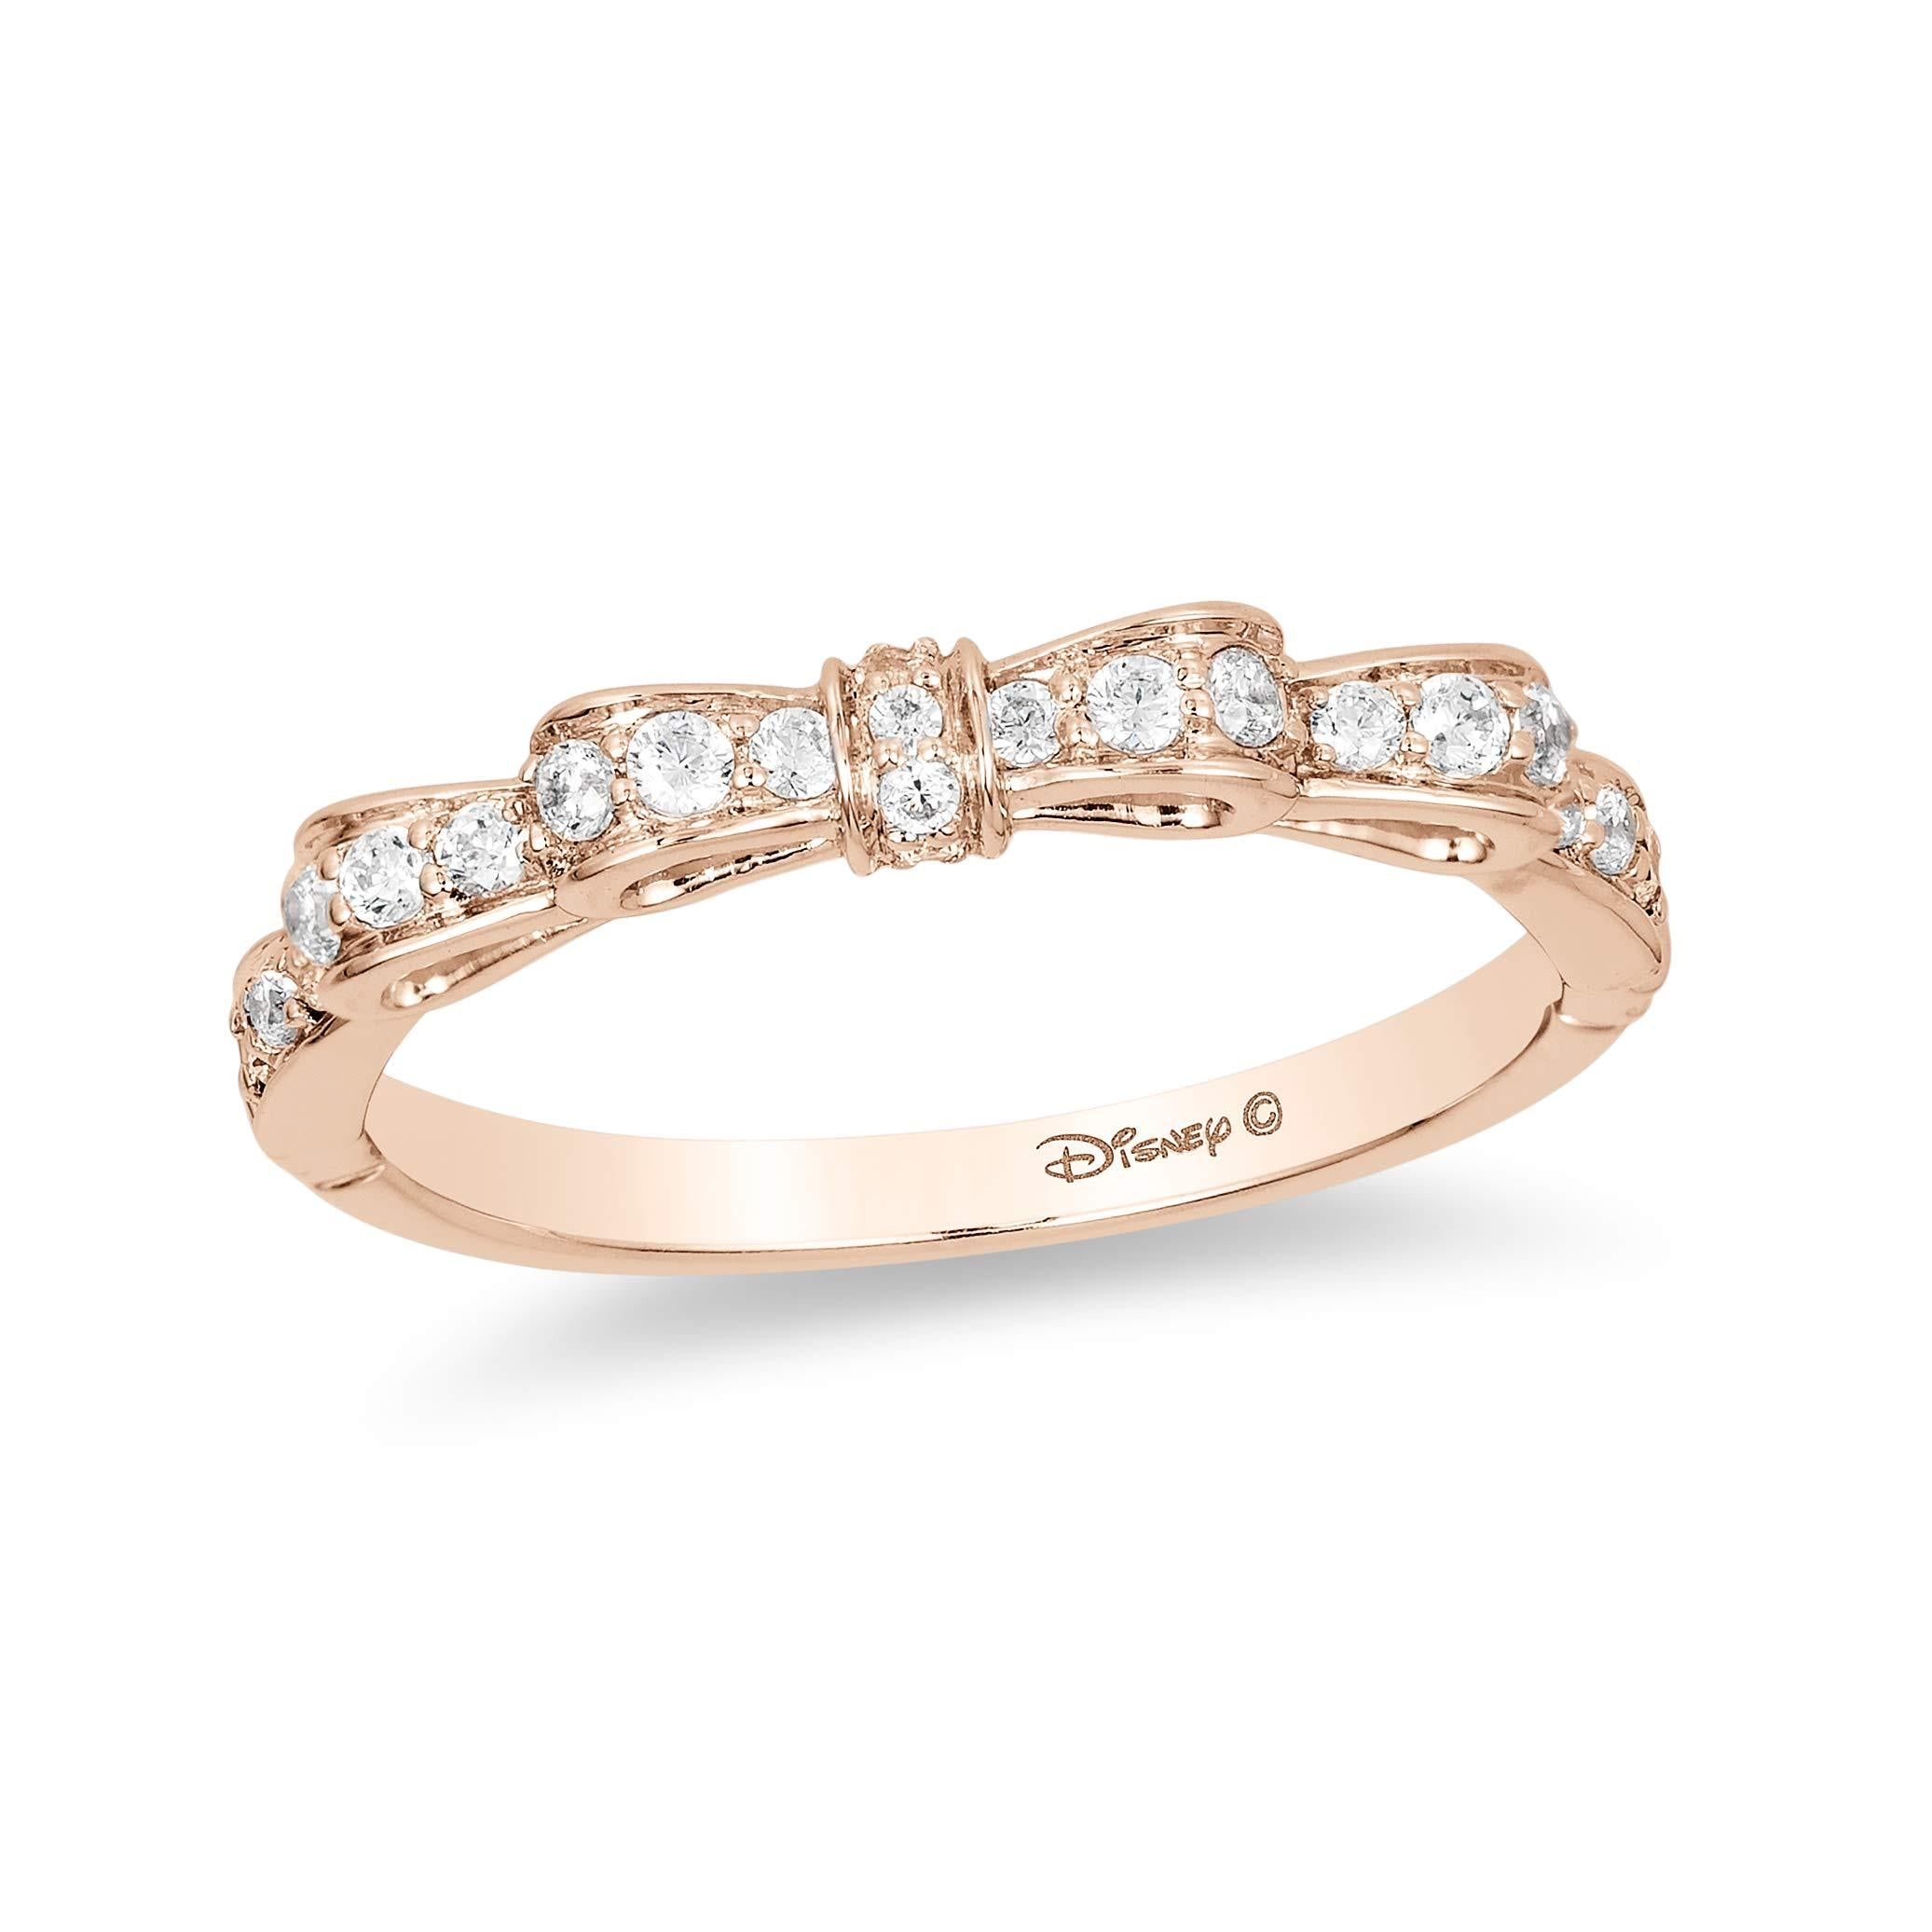 enchanted_disney-snow-white_bow_ring-14k_rose_gold_0.25CTTW_1